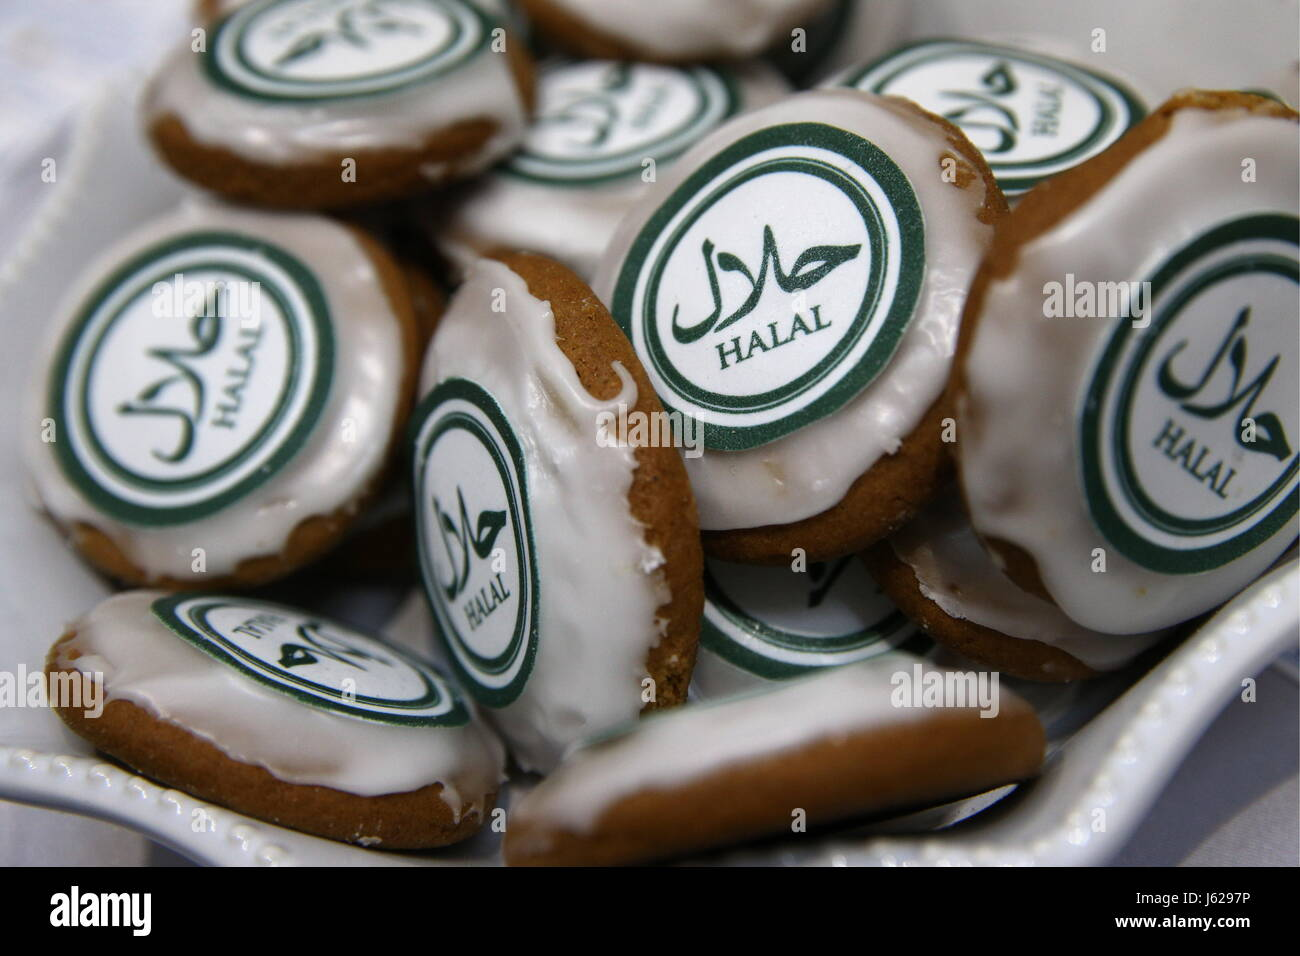 Kazan, Russia. 18th May, 2017. Biscuits seen at the Russia Halal Expo exhibition as part of the 9th International - Stock Image